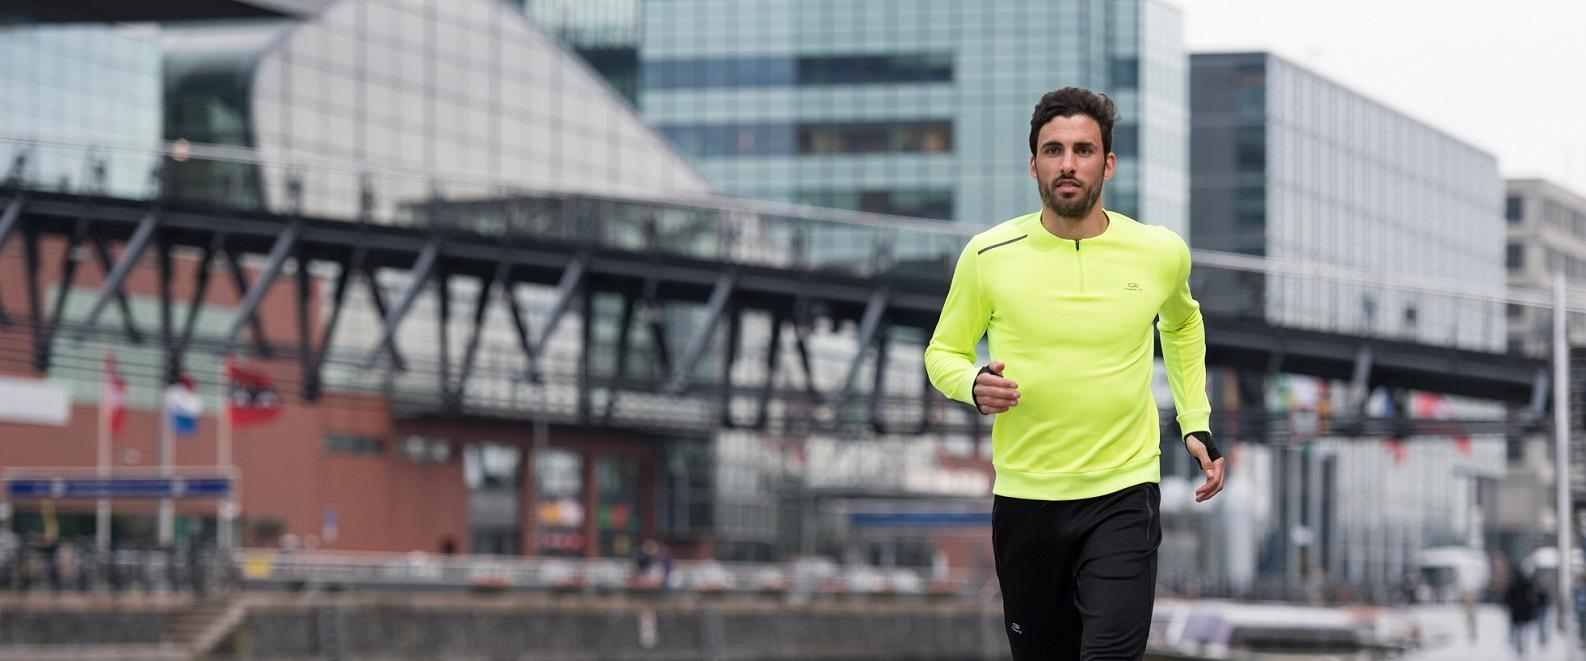 Learn To Extend The Time You Spend Running